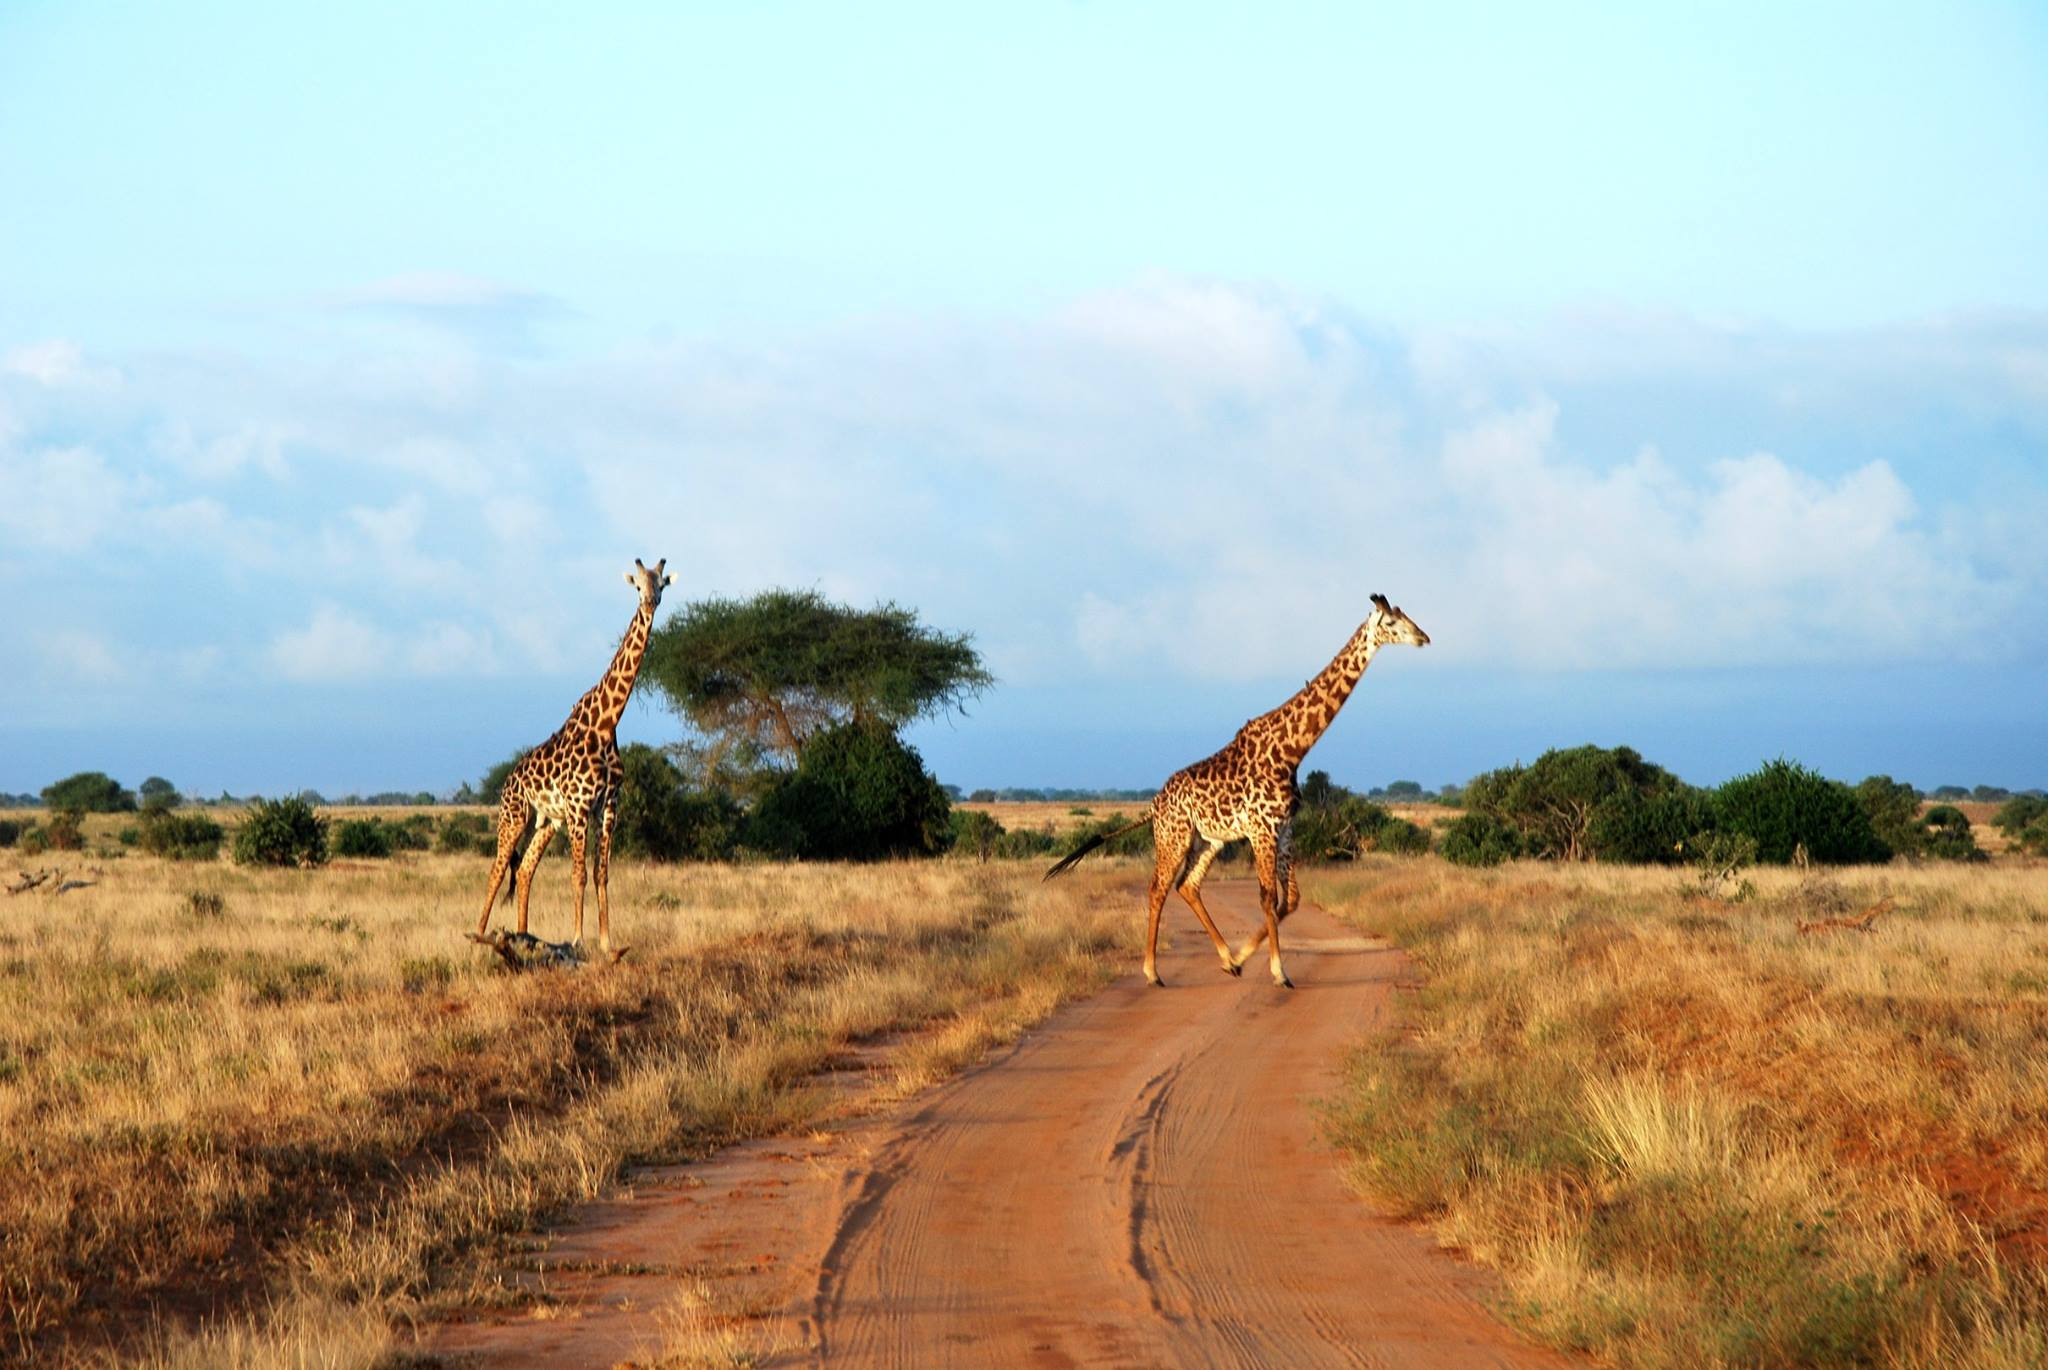 Safari Kenia - Getoutoftown.jpg